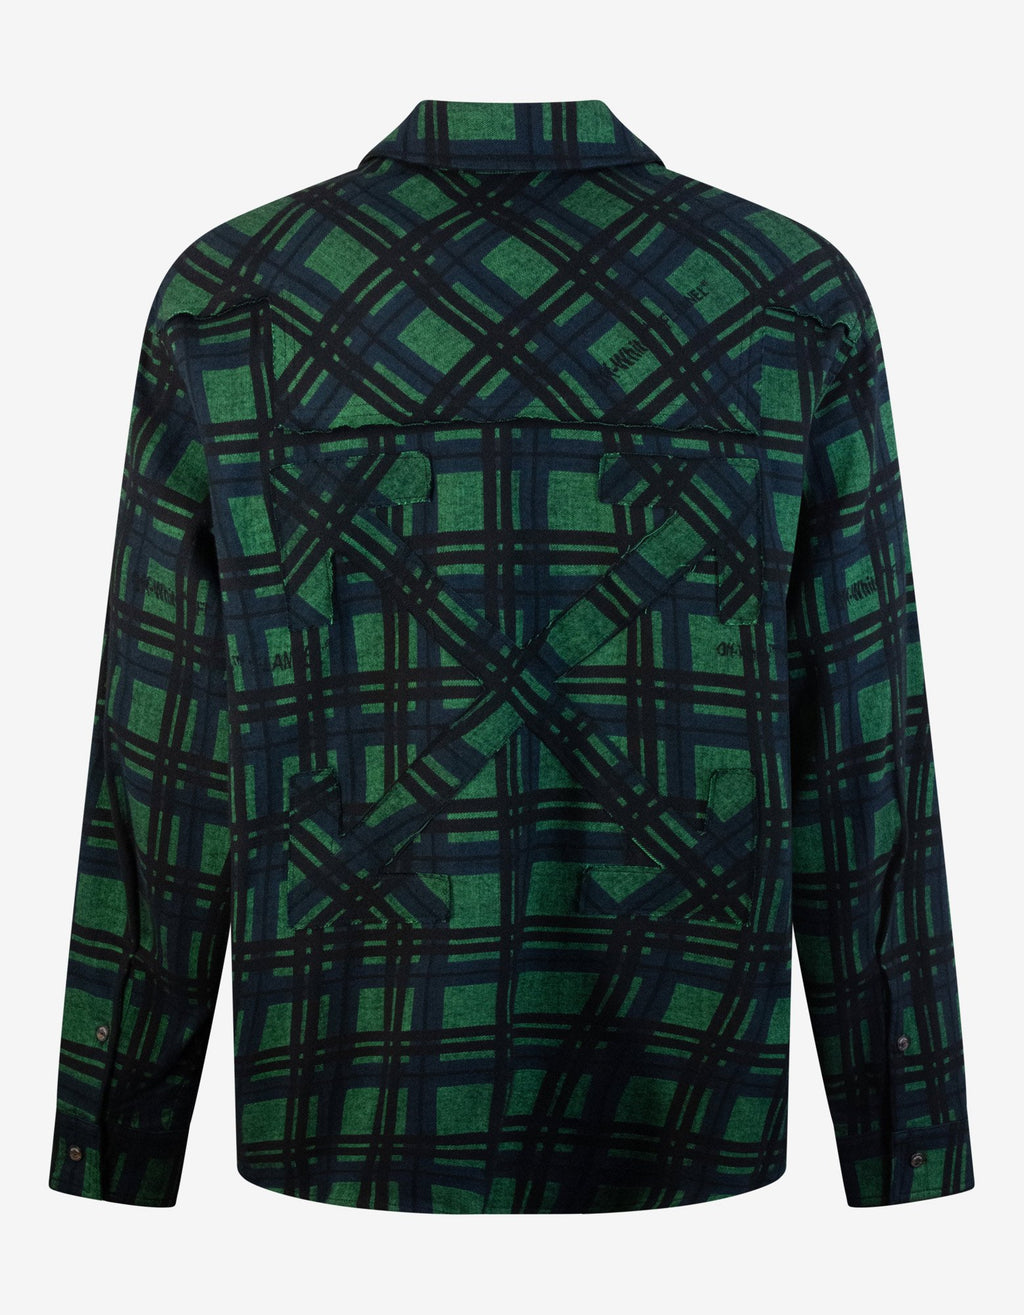 Green & Black Flannel Check Shirt -